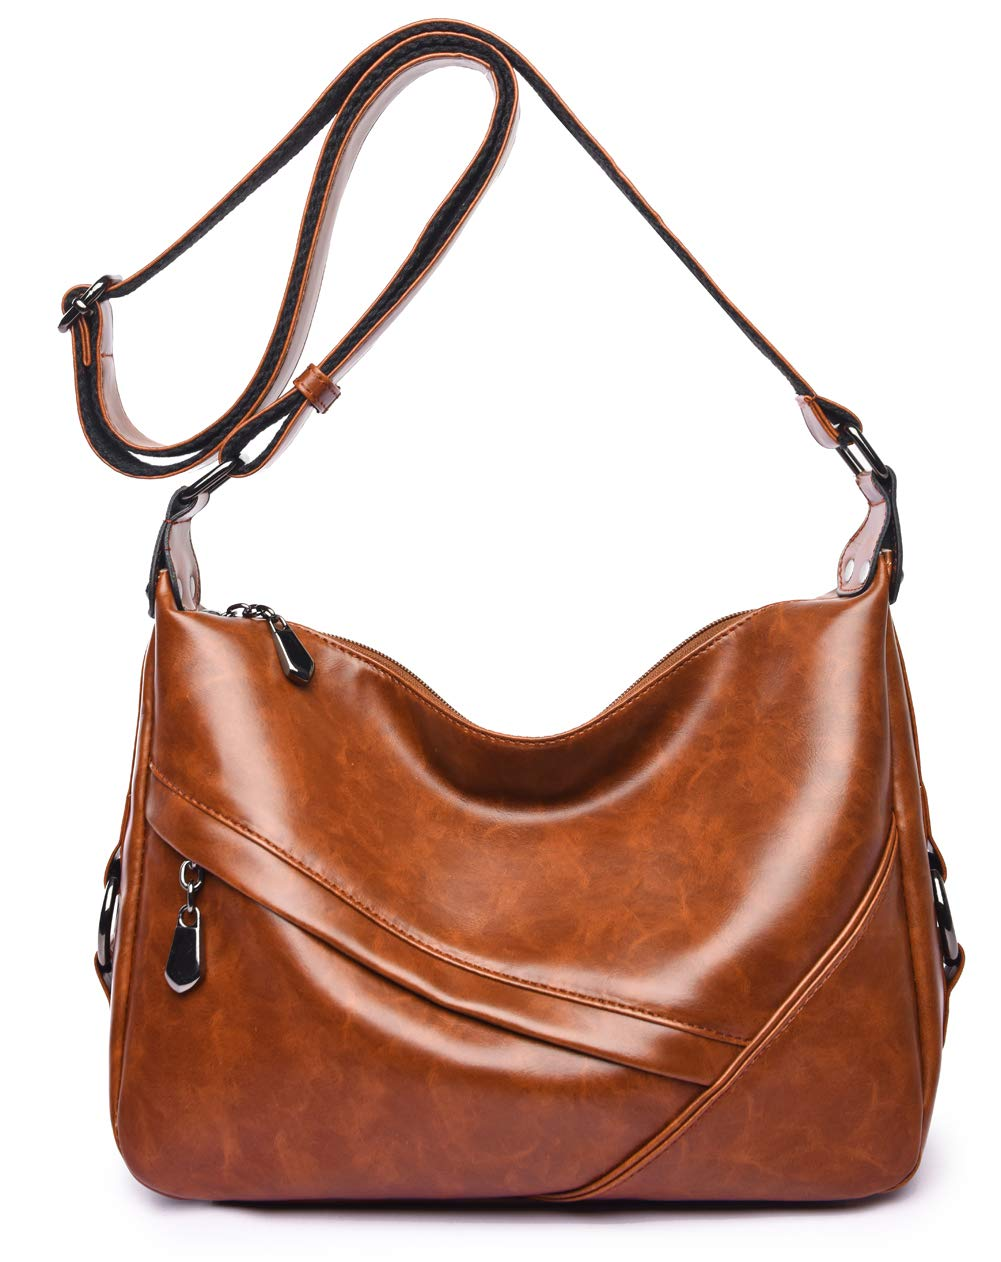 Women's Retro Sling Shoulder Bag from Covelin, Leather Crossbody Tote Handbag New Brown by Covelin